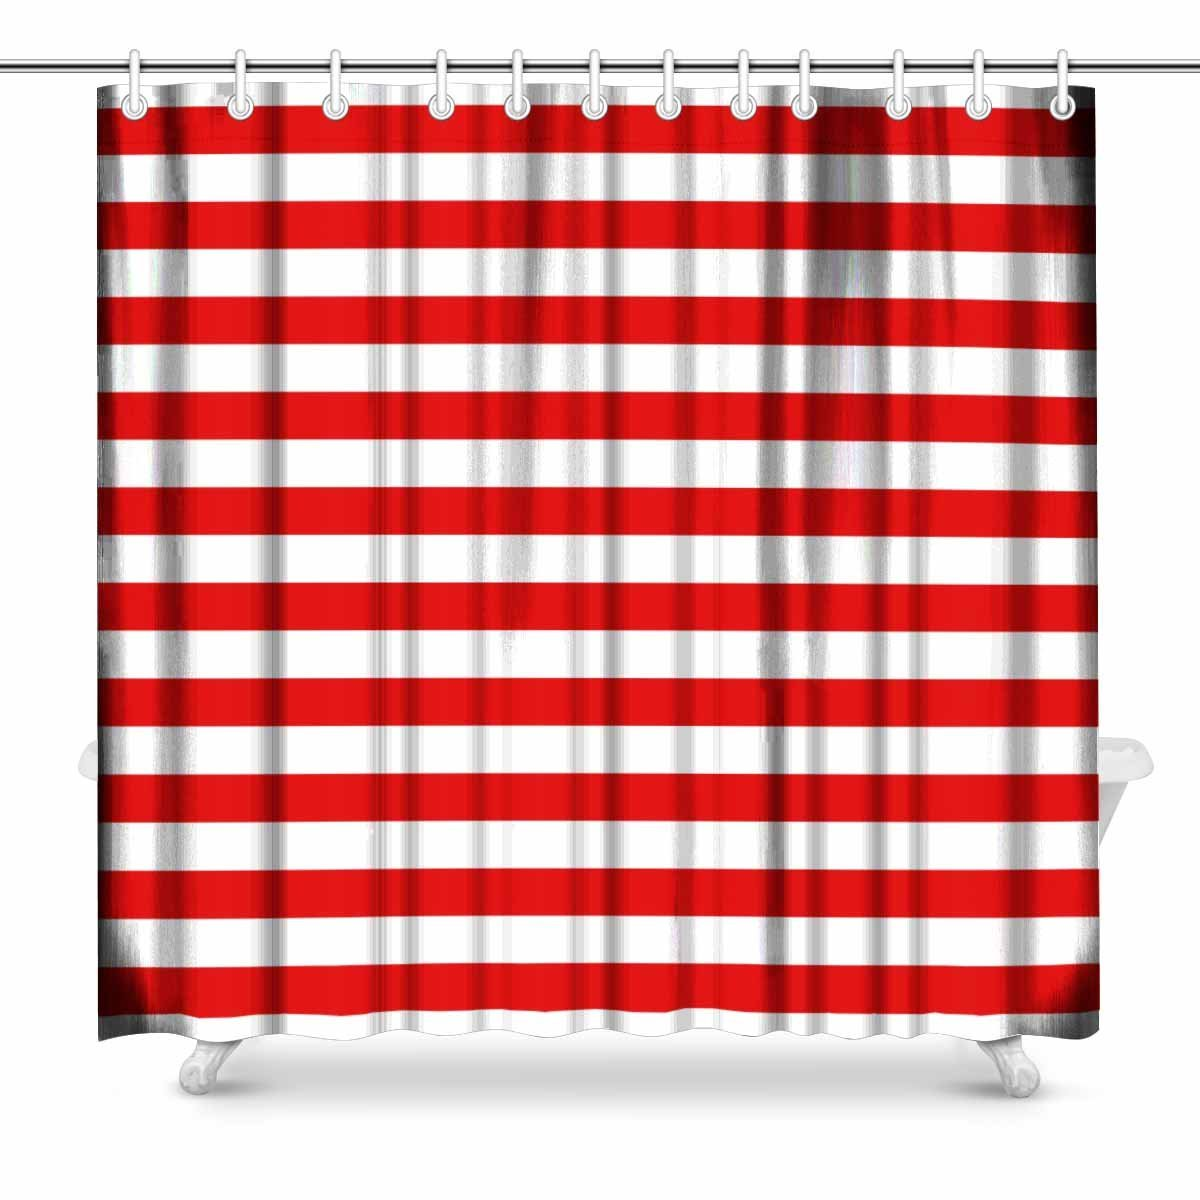 Us 16 57 35 Off Aplysia Abstract Geometric Horizontal Striped Pattern With Red And White Stripes Polyester Fabric Bathroom Shower Curtains In Shower